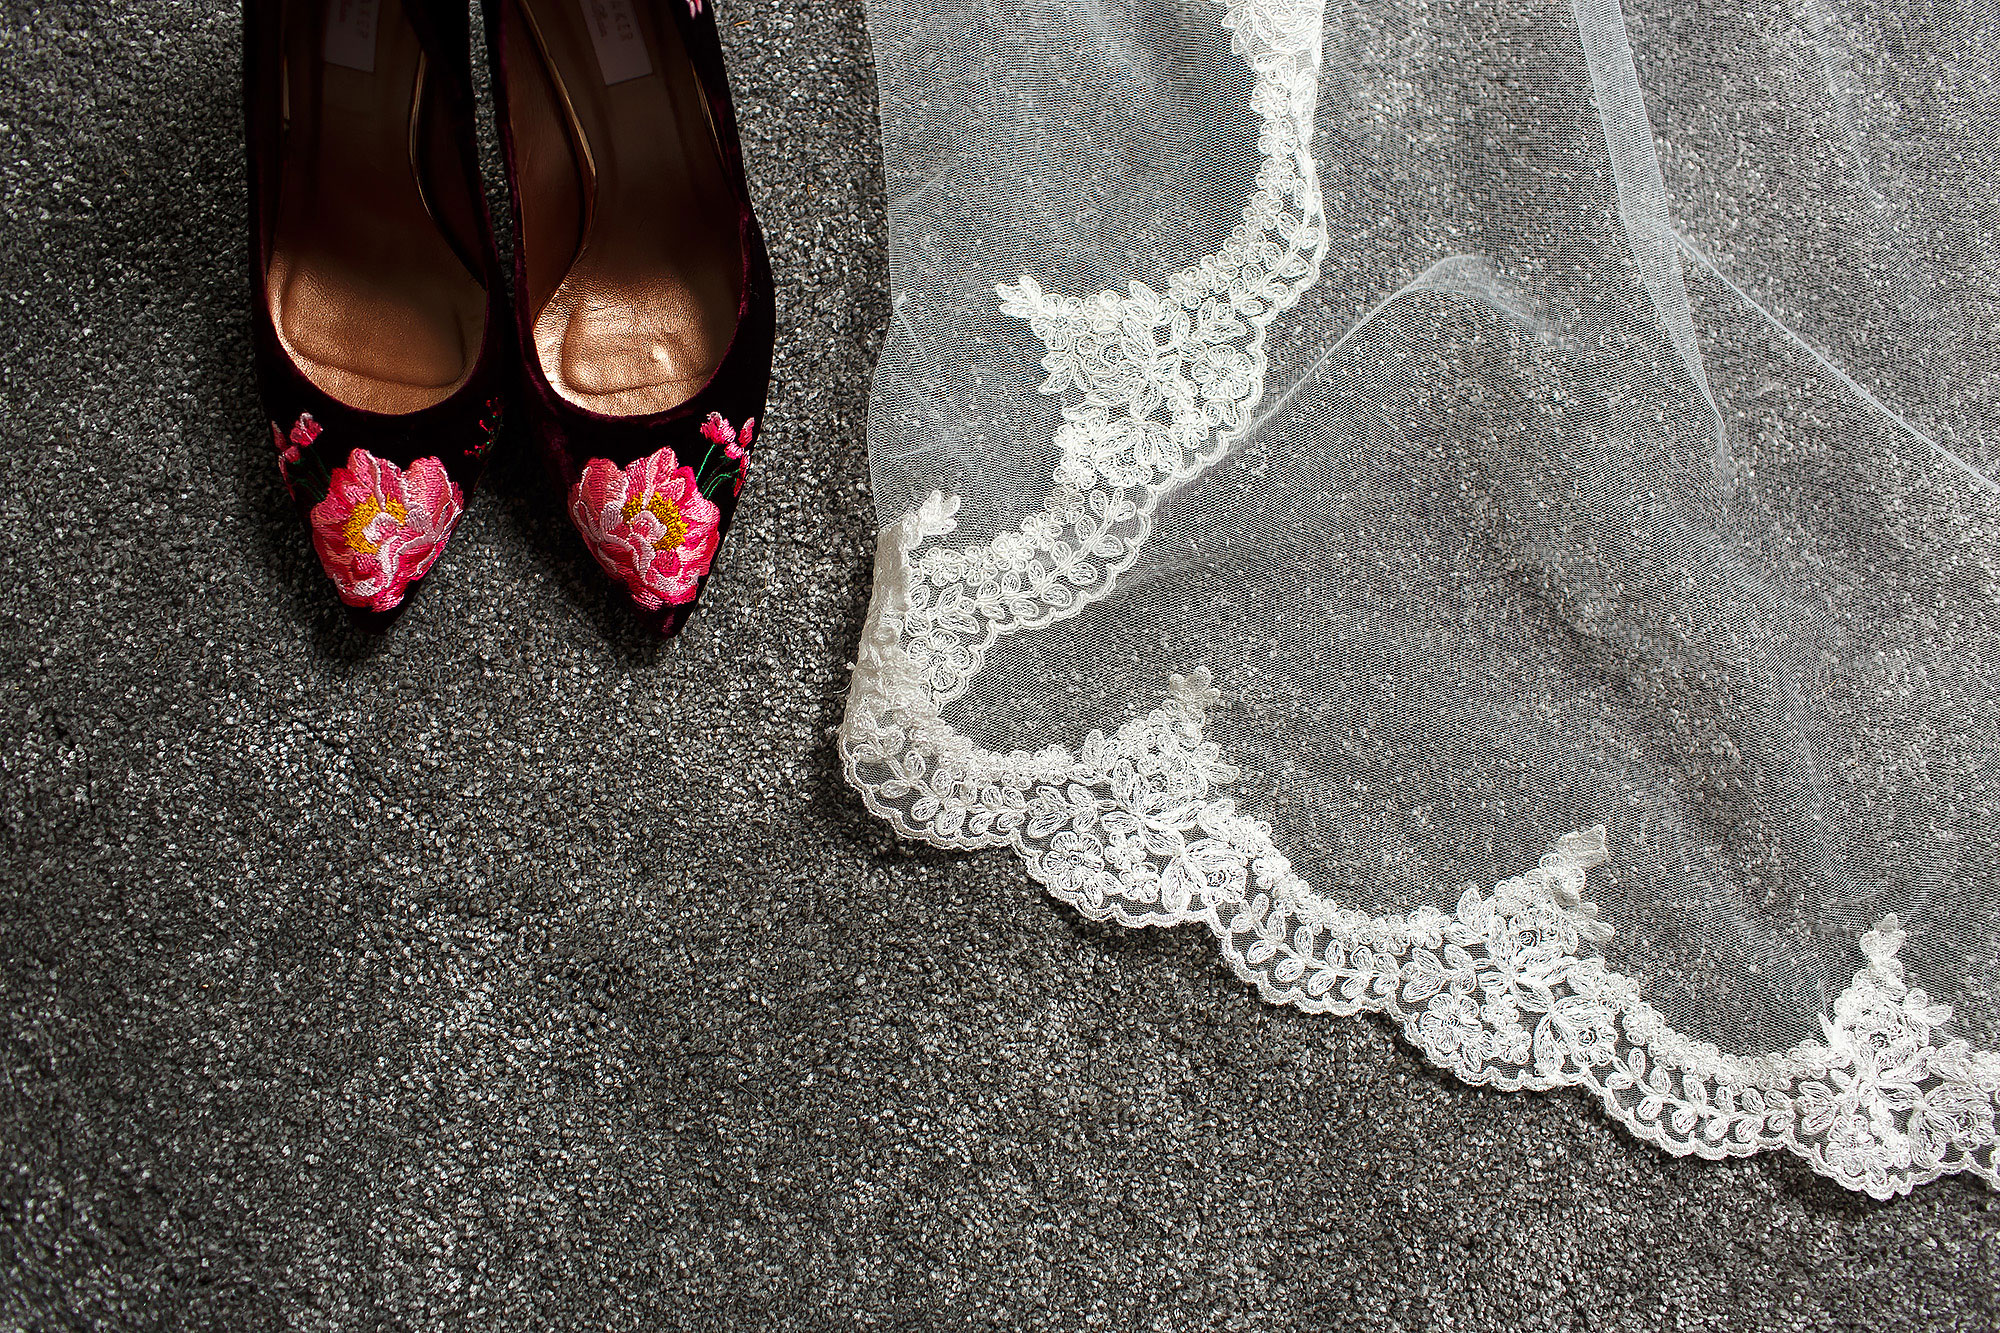 Burgundy Ted Baker Wedding Wedding Shoes placed next to laced veil - The Out Barn at Clough Bottom Wedding Photography